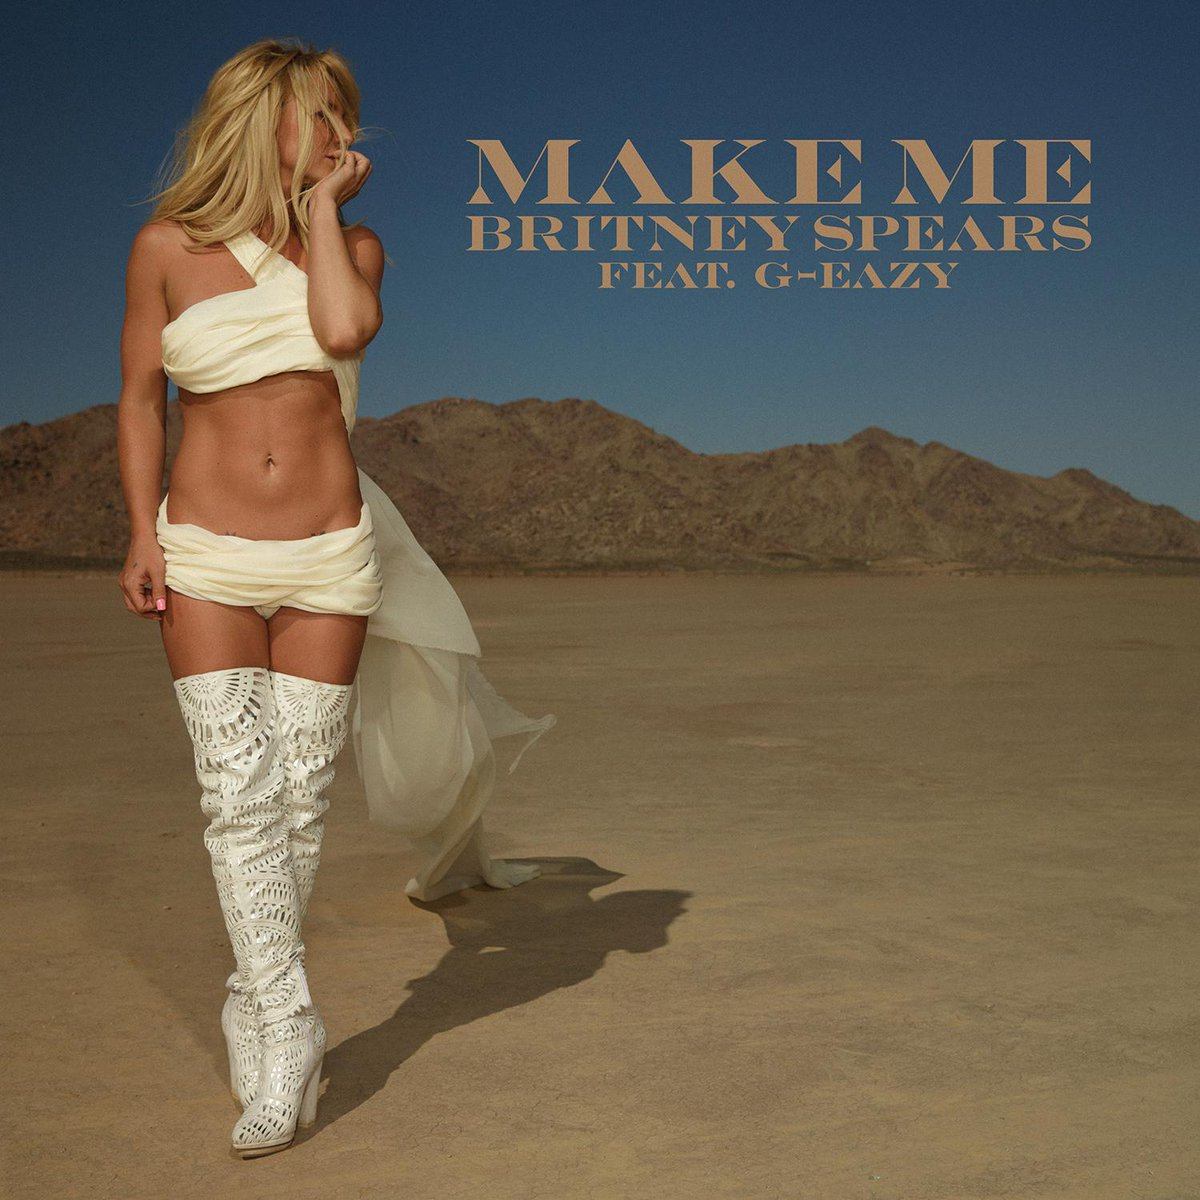 Who else has #MakeMe on repeat all day?  Get the new track from @britneyspears here: https://t.co/TyjDA9e7bv https://t.co/Irtt0o9cBk